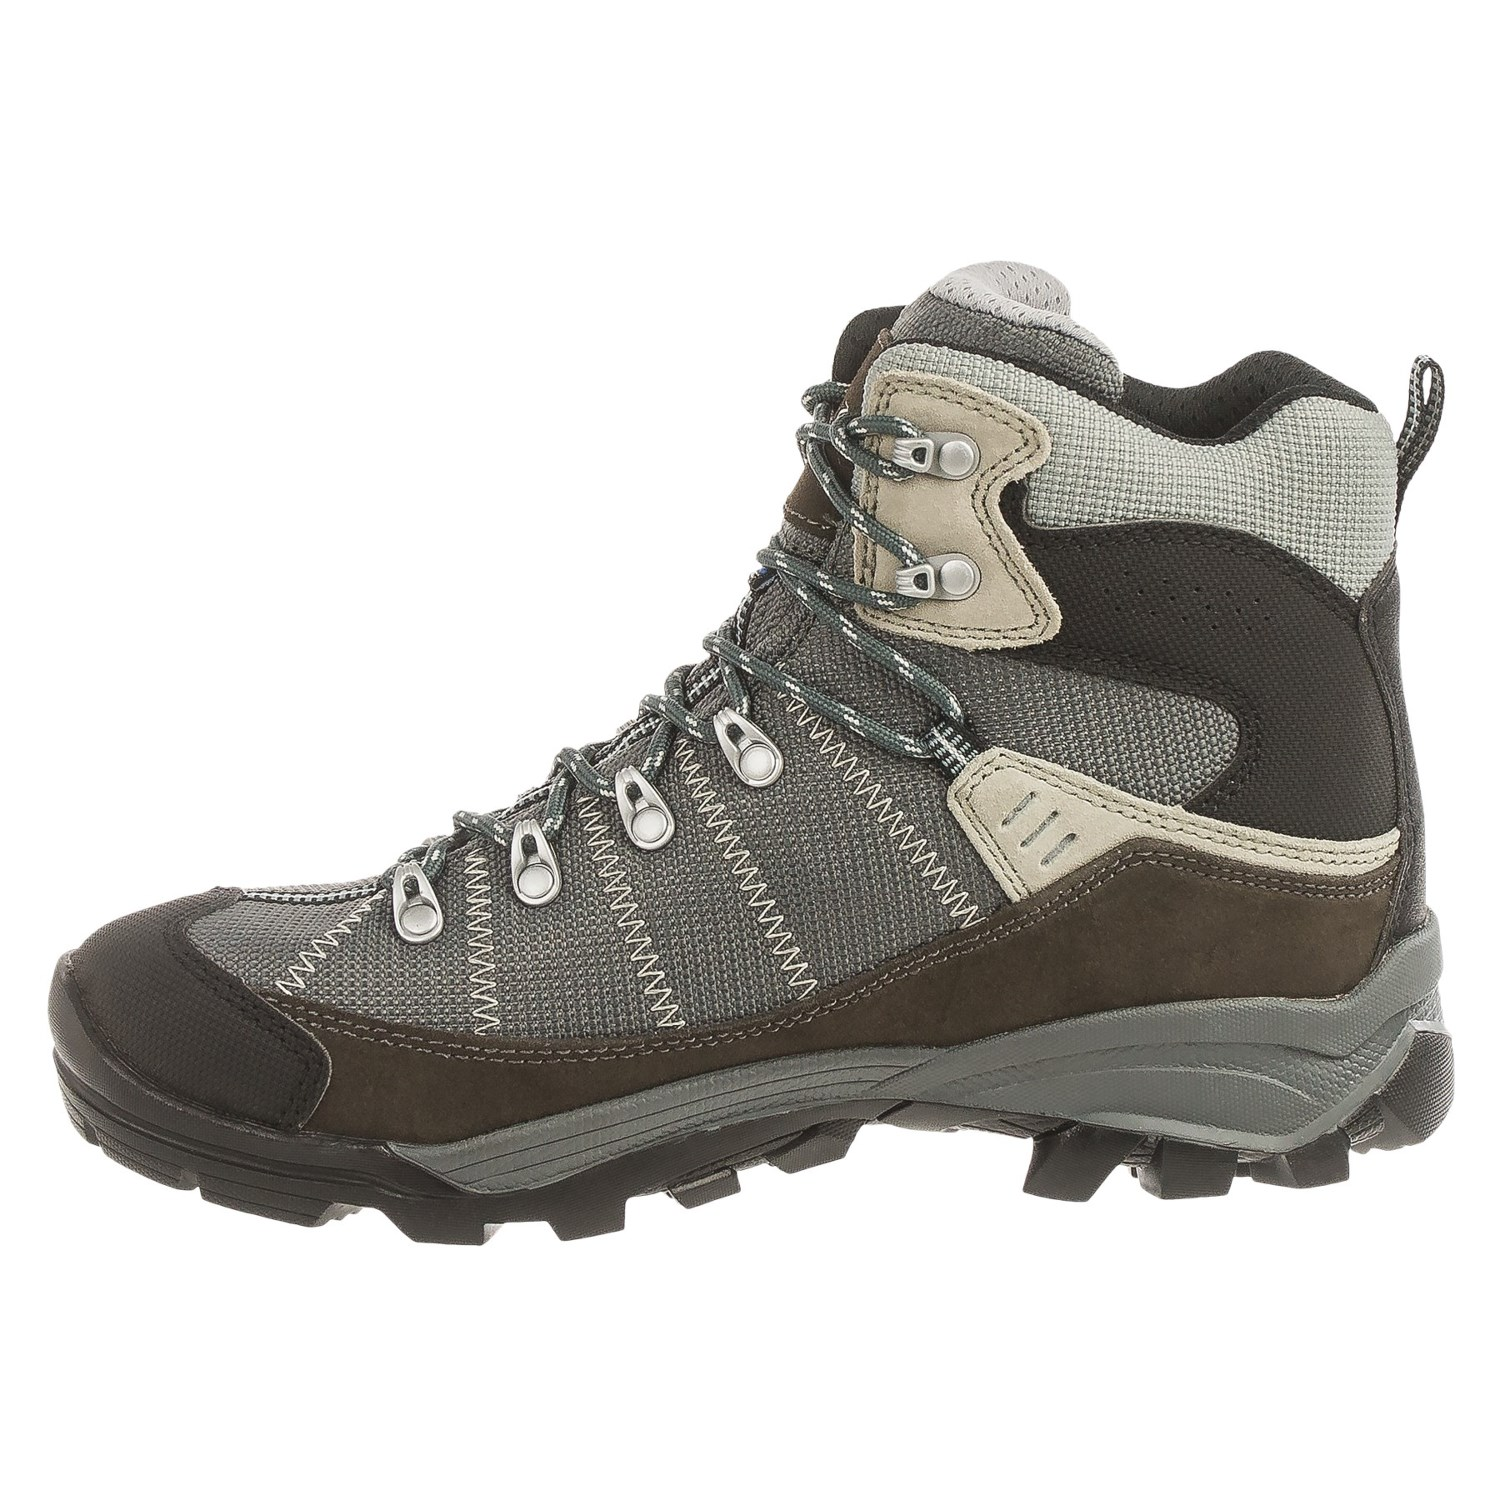 Trezeta Inca Hiking Boots For Men Save 50